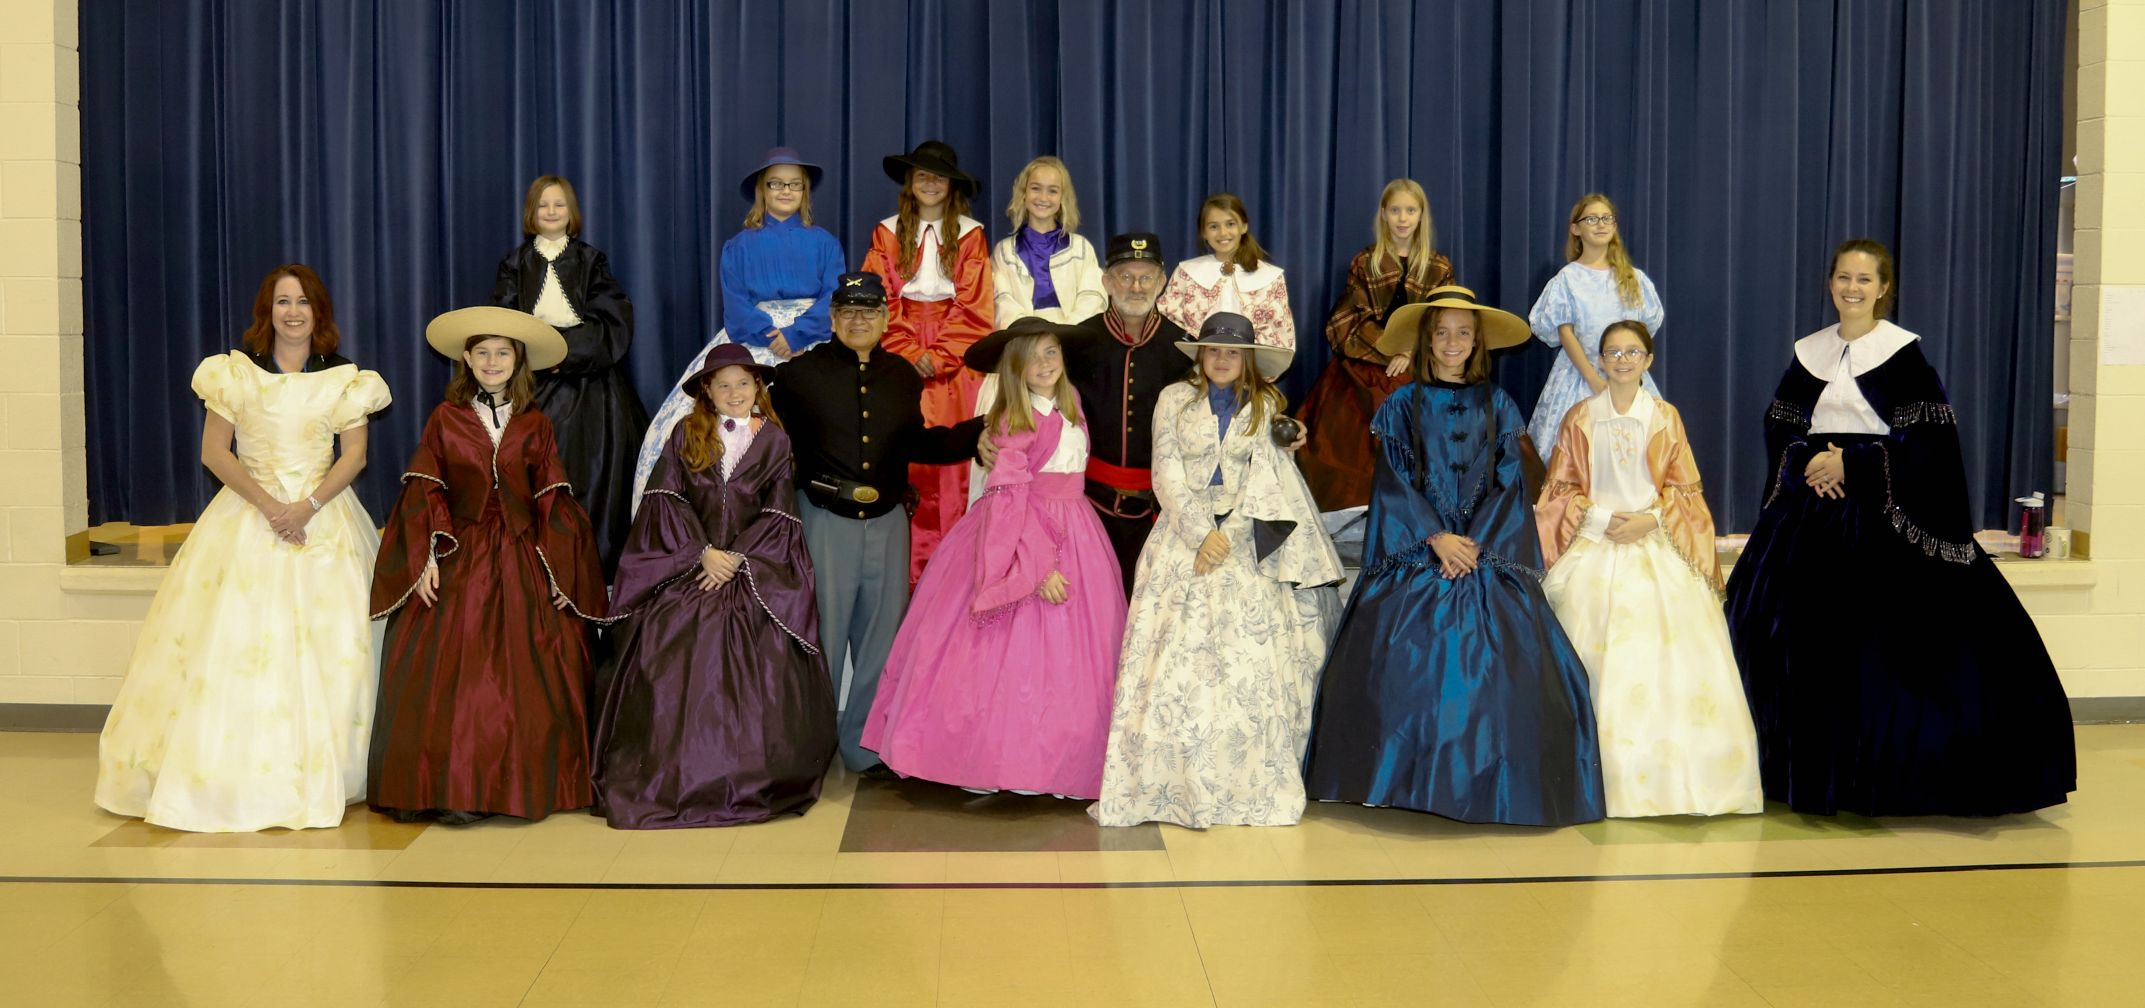 Civil War Dresses